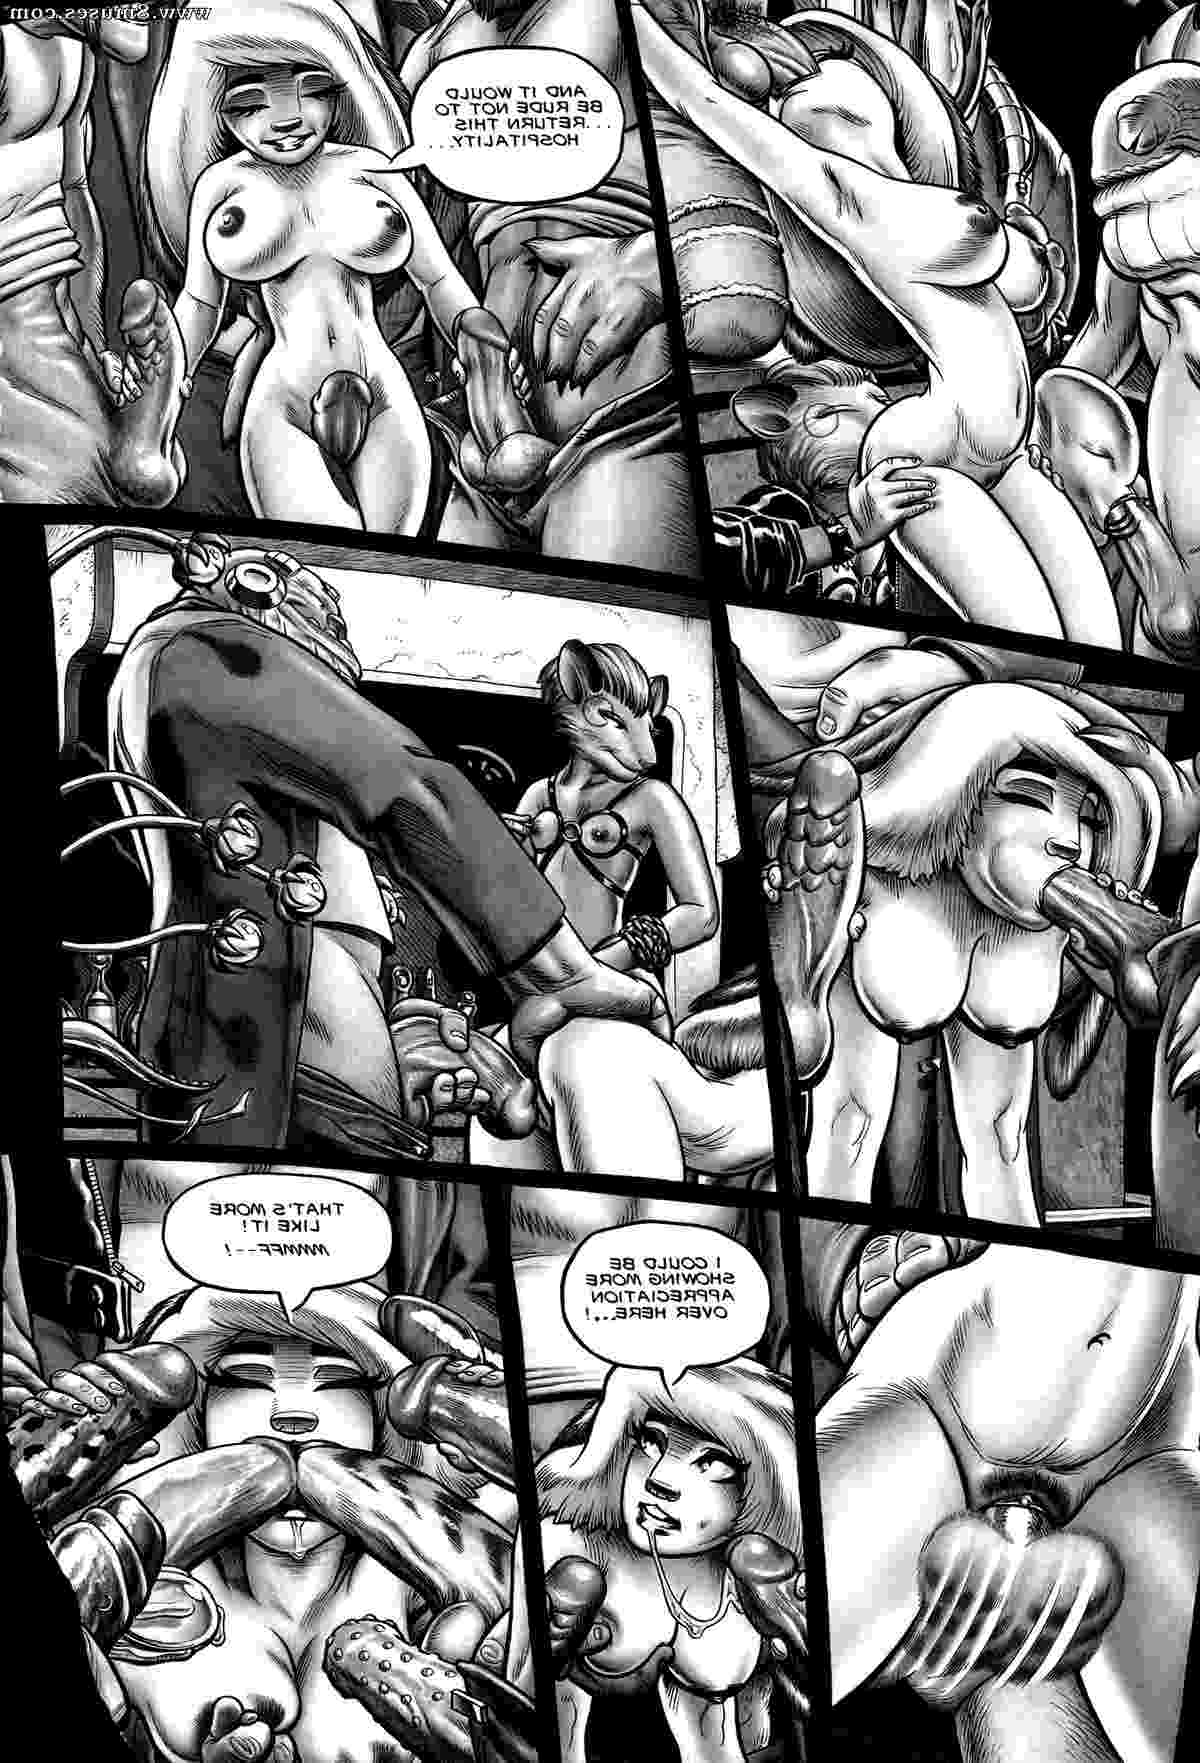 Amerotica-Comics/Short-Strokes Short_Strokes__8muses_-_Sex_and_Porn_Comics_54.jpg